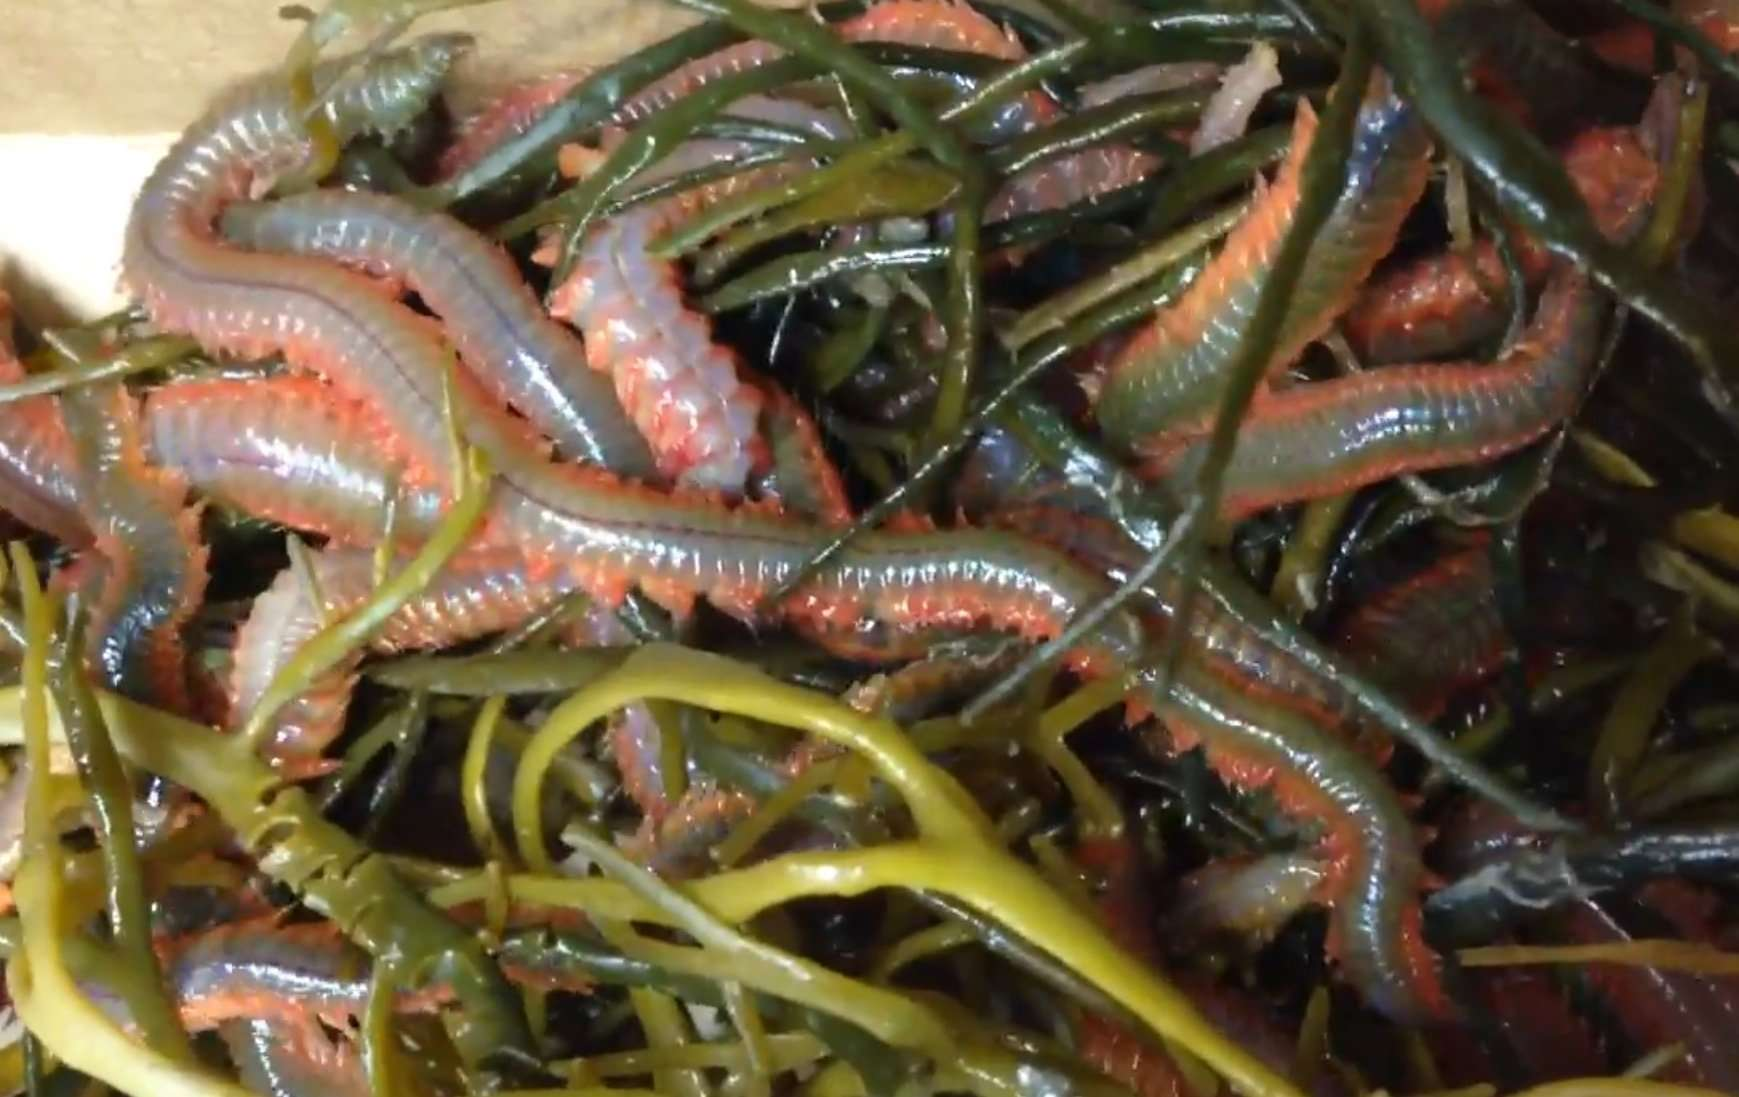 Surfland bait and tackle plum island fishing worms for Worms for fishing bait